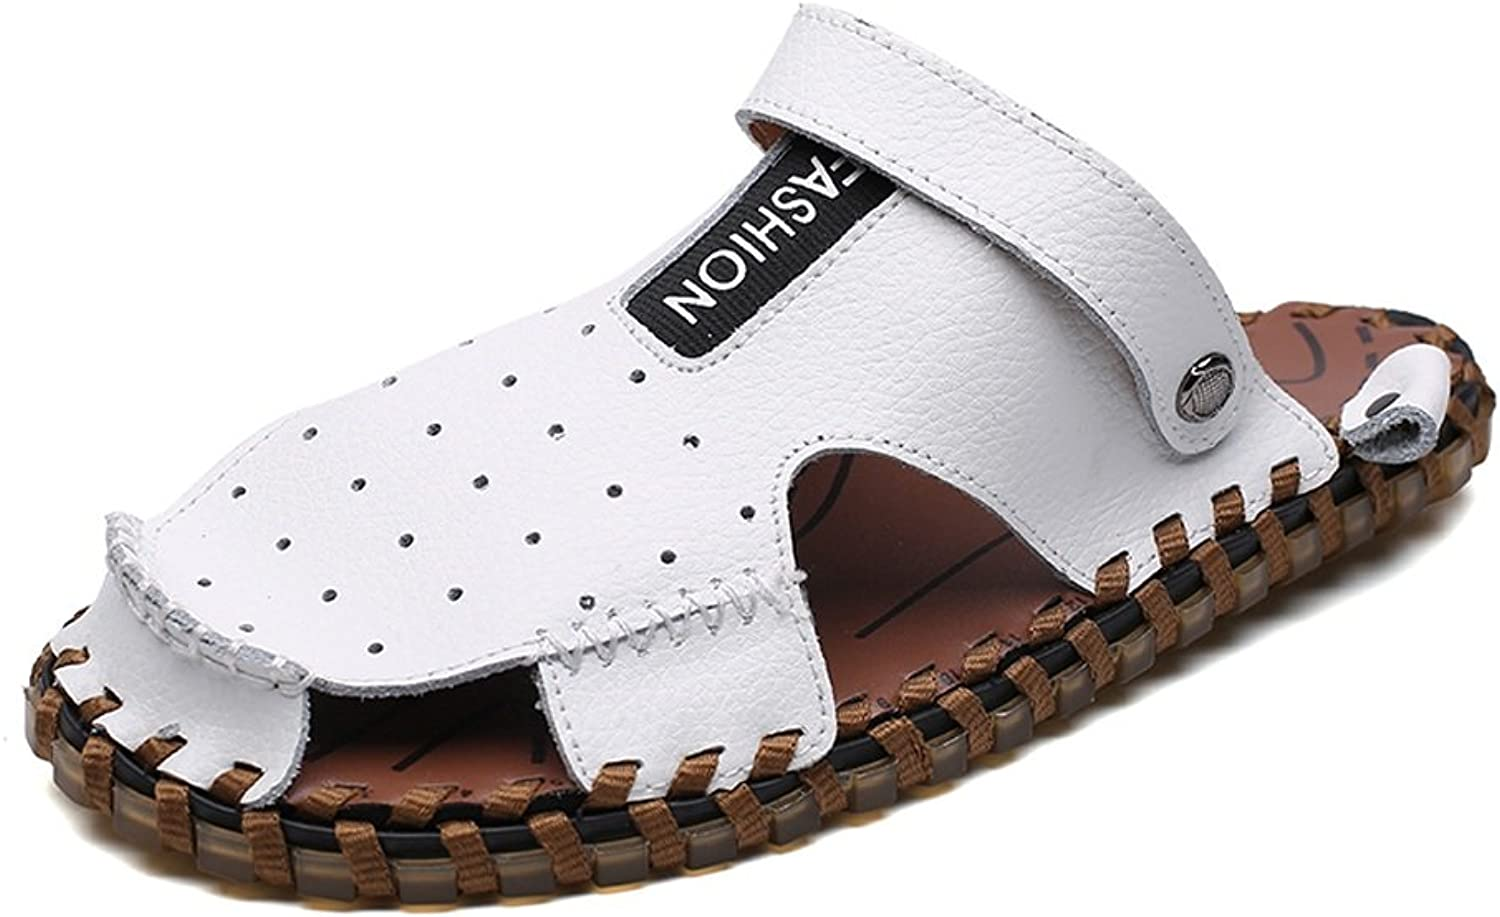 ANNFENG Fashion Tropical Summer Outdoor Casual Lightweight Waterproof Men's Beach Slippers, Comfort Elegant Business Leisure Breathable Perforation Genuine Leather Non-slip Sole Sandals Switch Backles